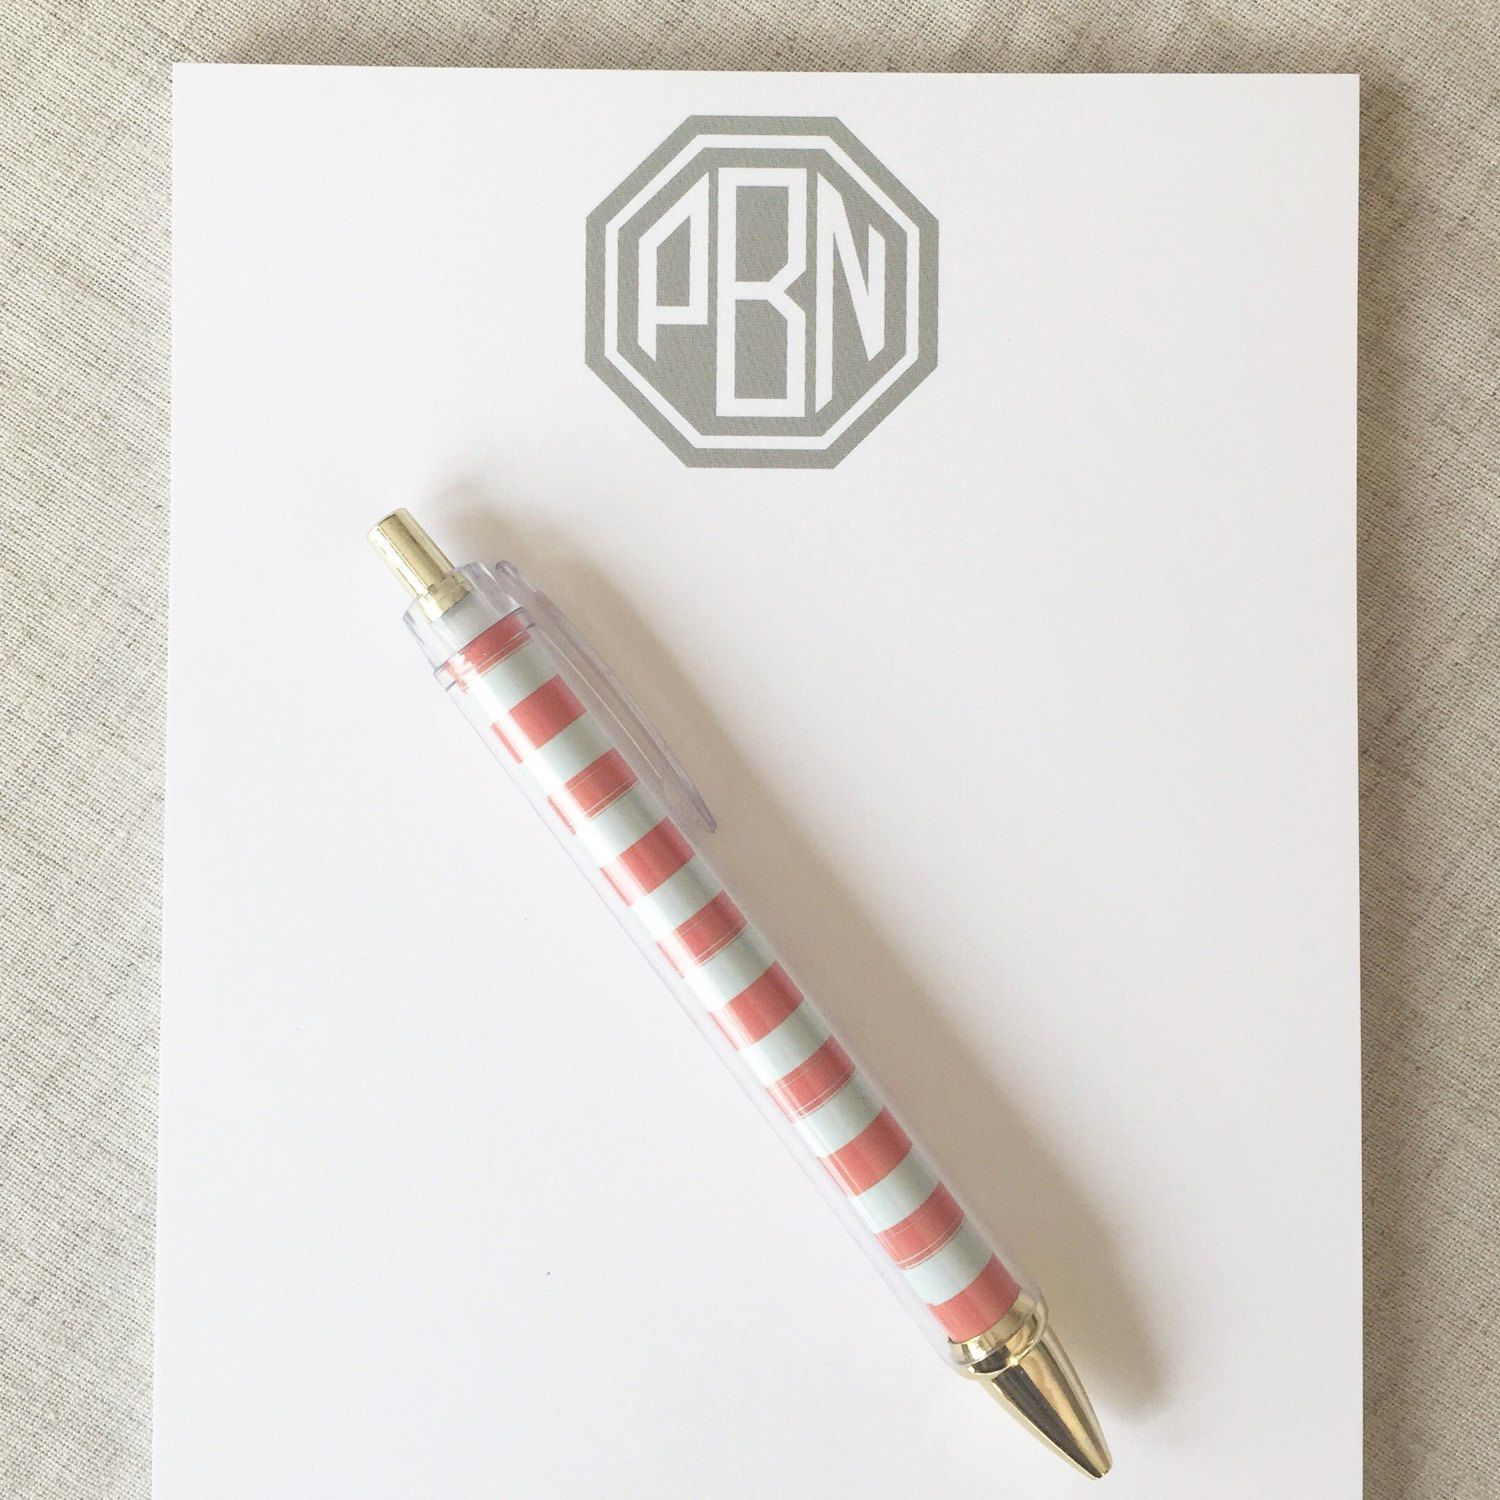 Monogram notepads are perfect for moms and teachers. Last day to order gifts for moms is April  25!